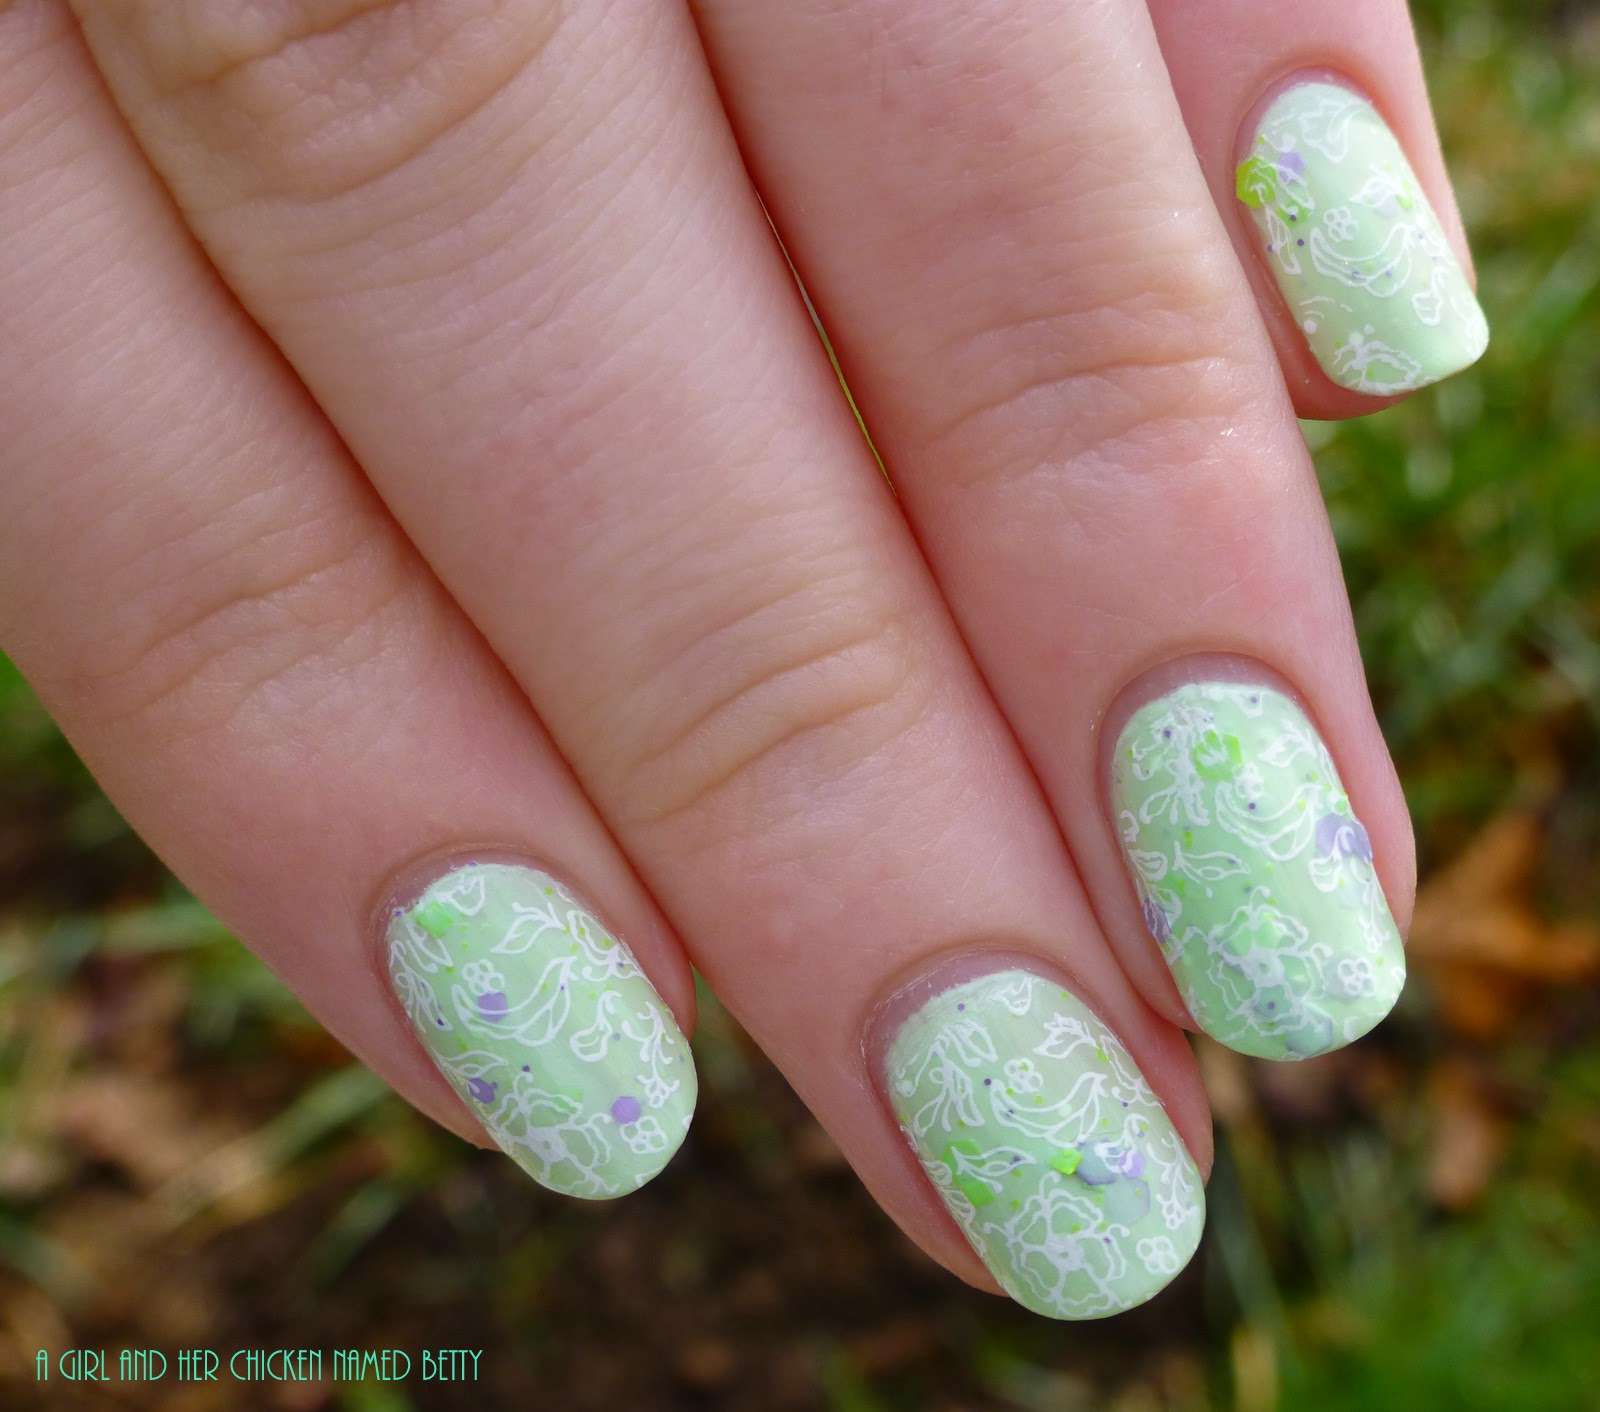 KB Shimmer Daisy About You